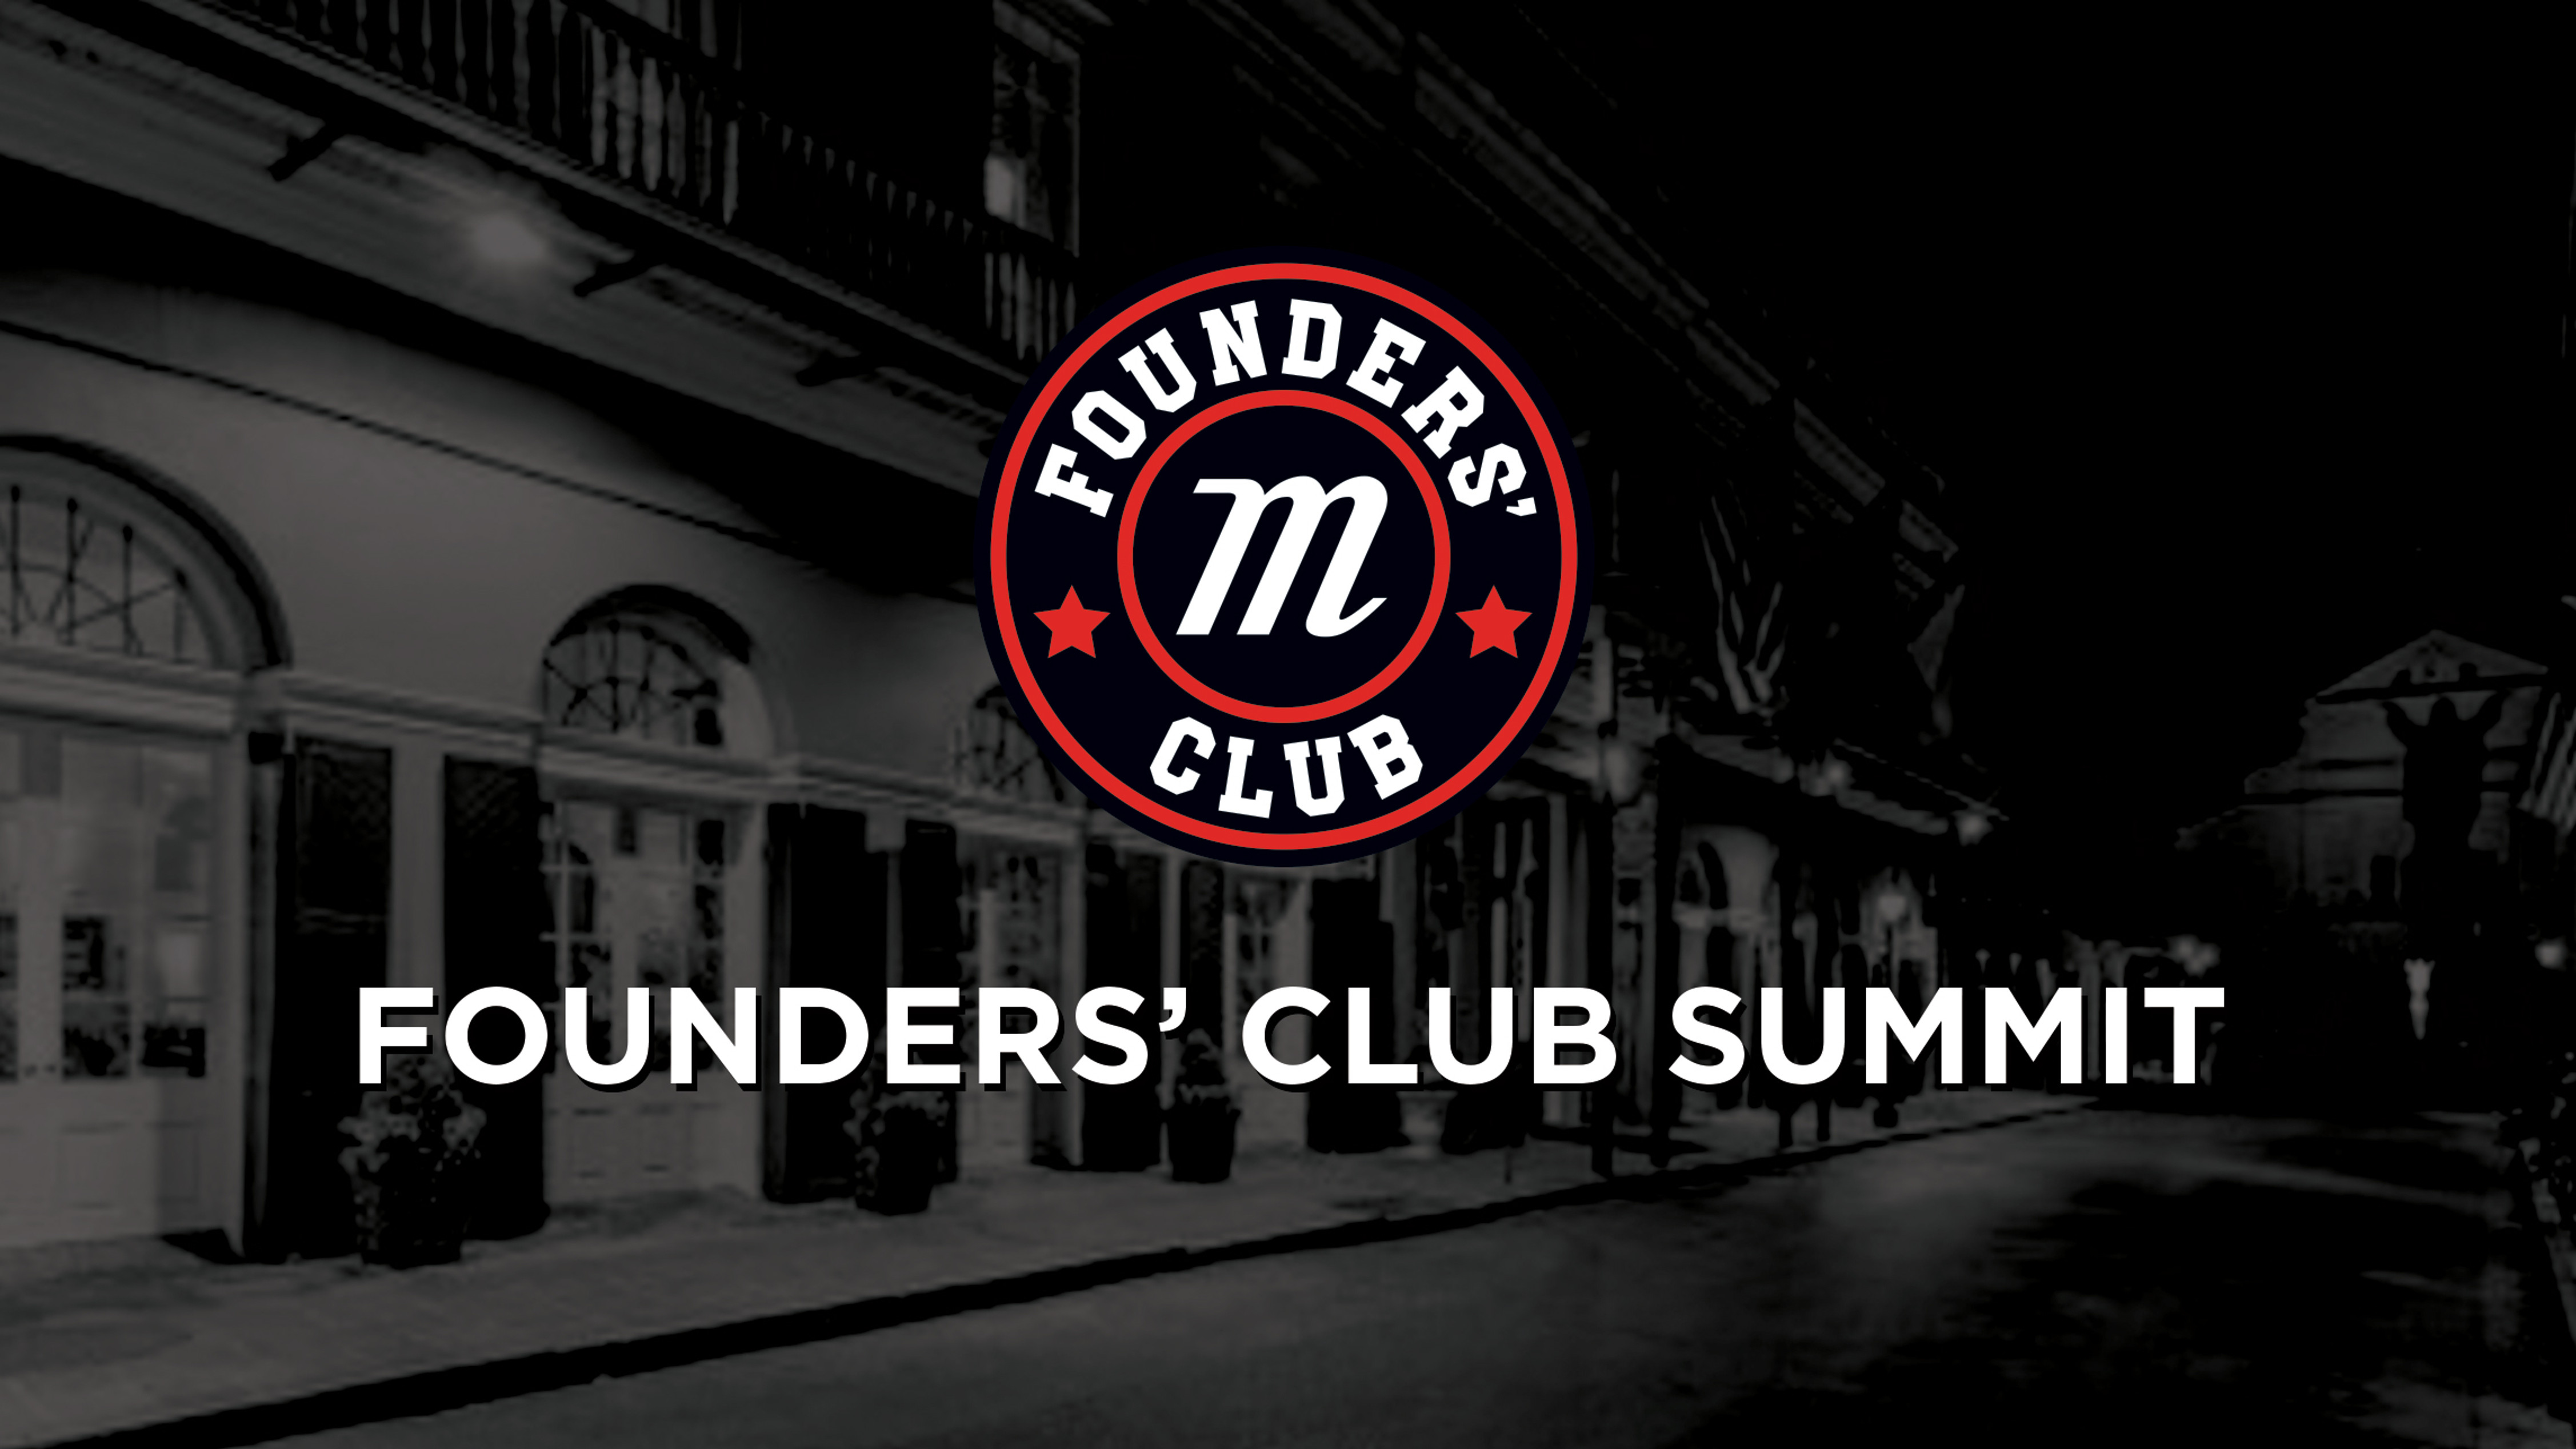 Marucci to host 2019 Founders' Club Summit Meeting Tuesday and Wednesday